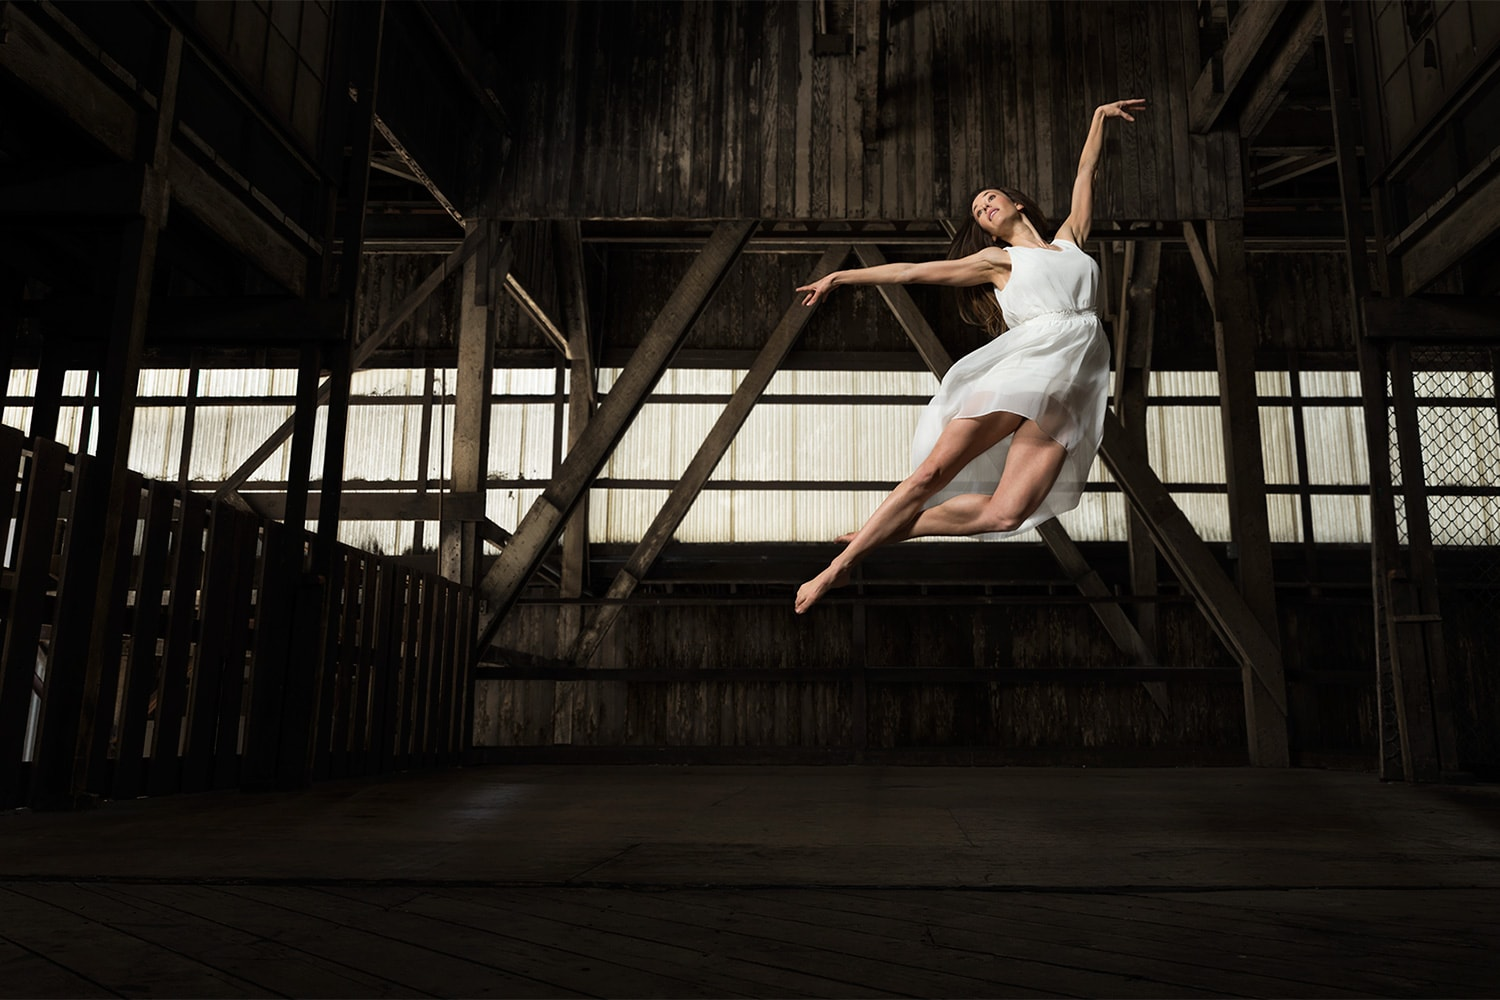 Female-Ballet-Ballerina-dancing-jumping-white-outfit-wood-warehouse-Rod-McLean